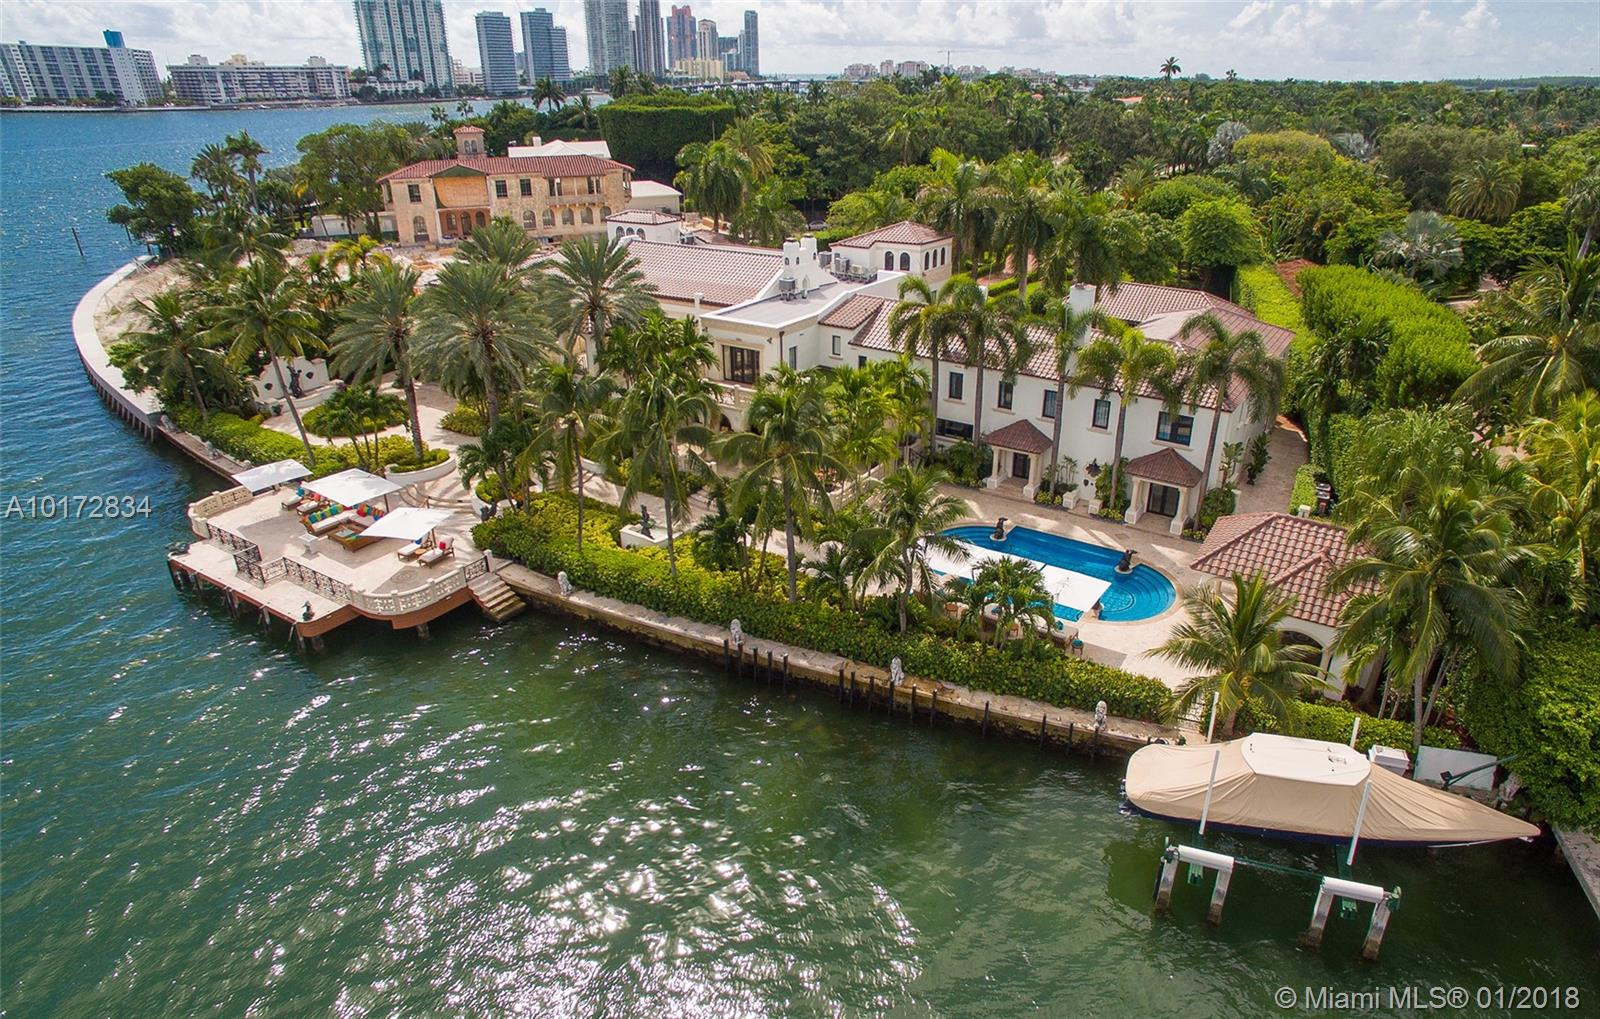 Harborview at Fisher Island